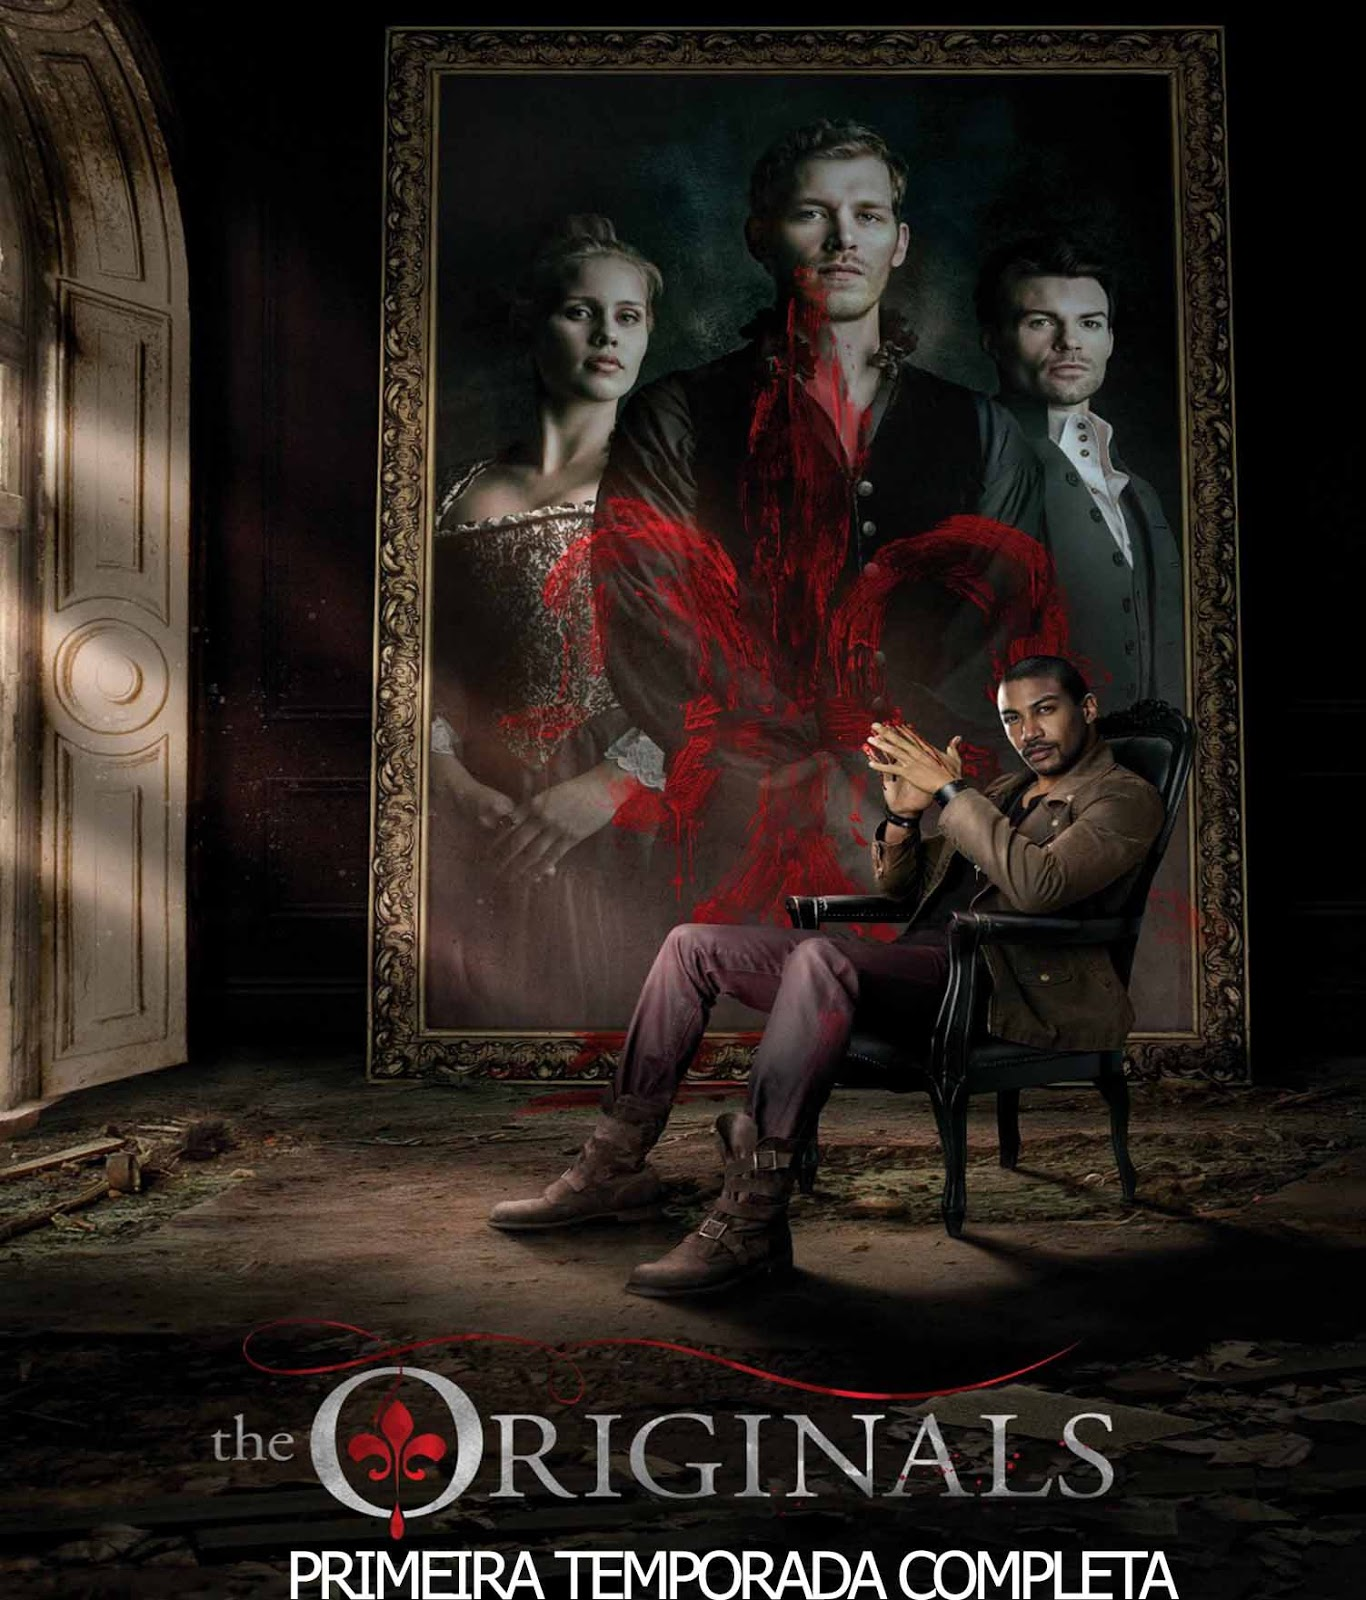 The Originals 1ª Temporada Torrent – Blu-ray Rip 720p Dual Áudio (2014)